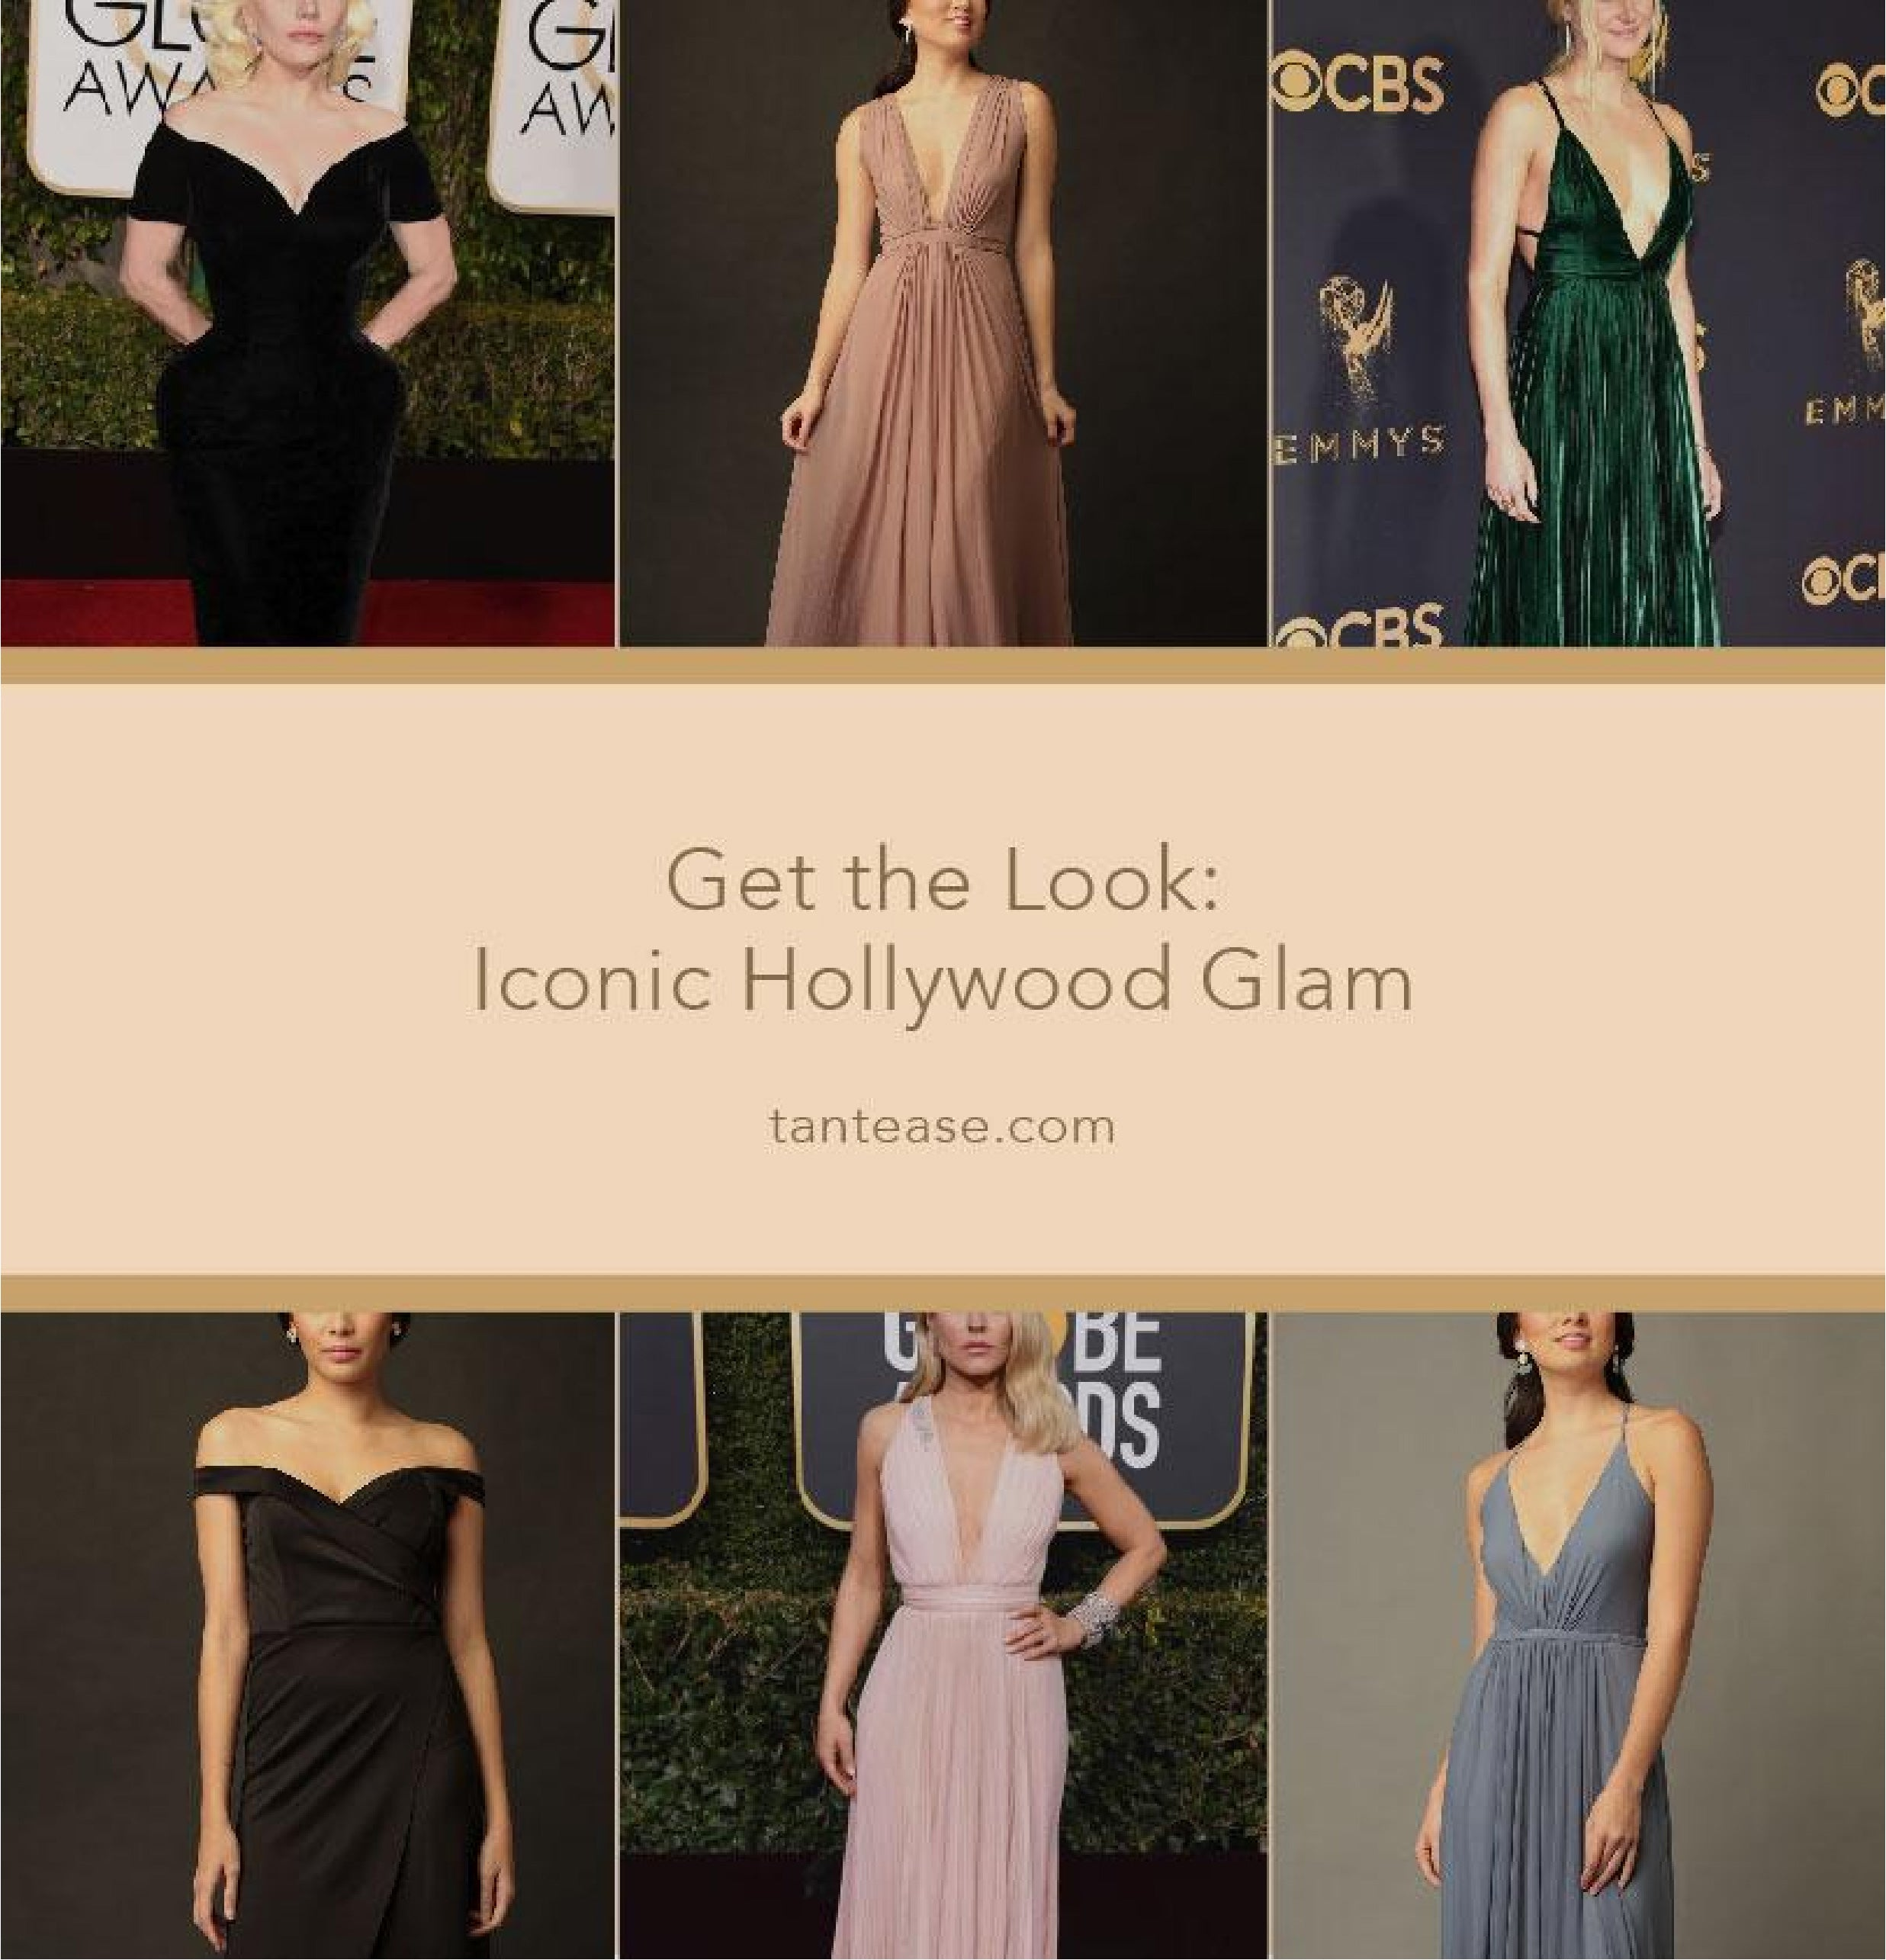 Get The Look: Iconic Hollywood Glam